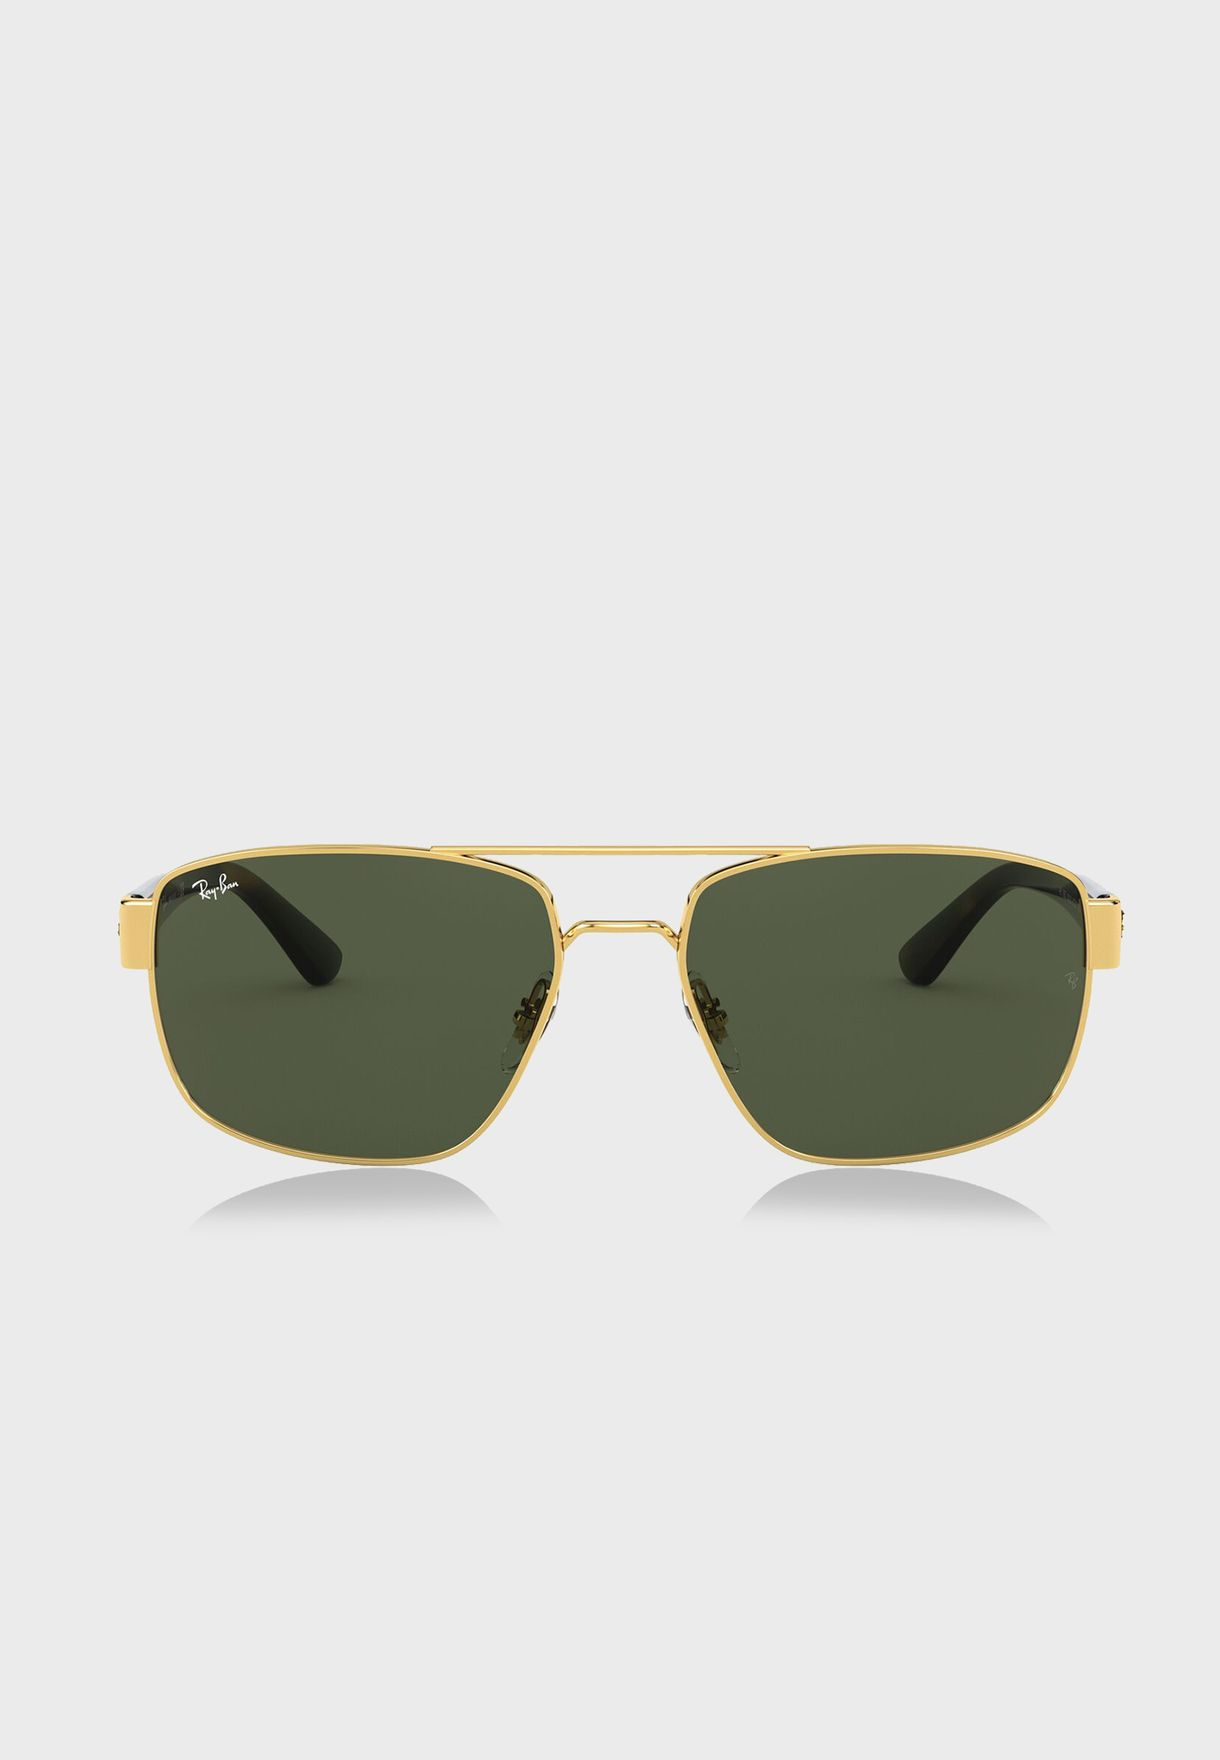 0RB3663 Irregular Sunglasses